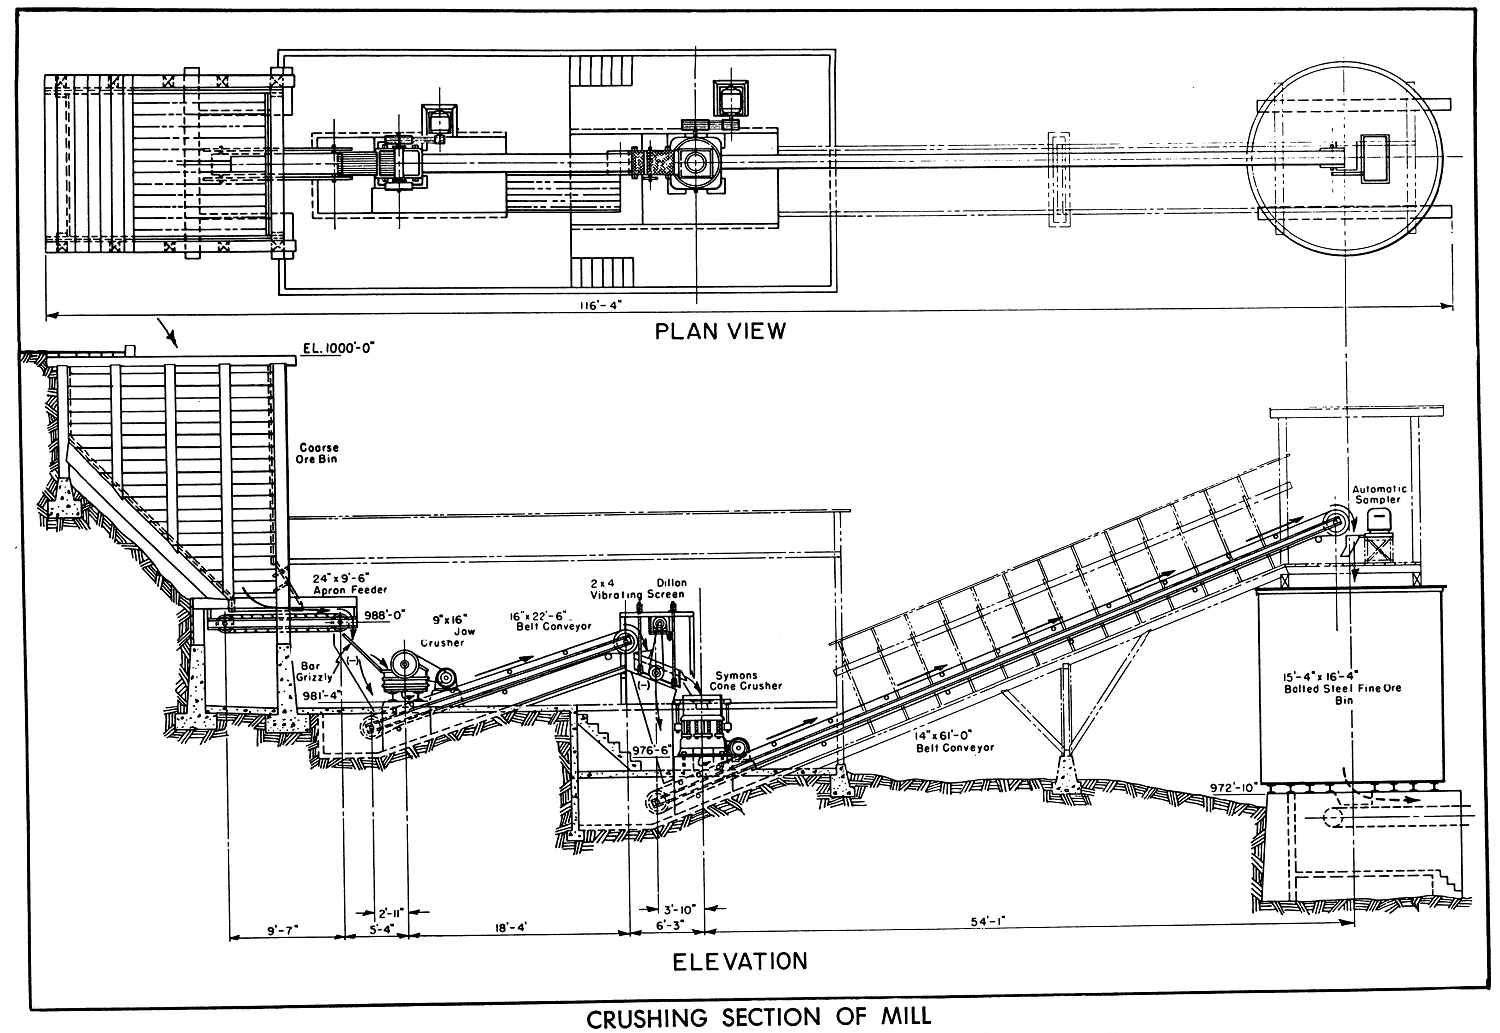 Crushing Section of Mill